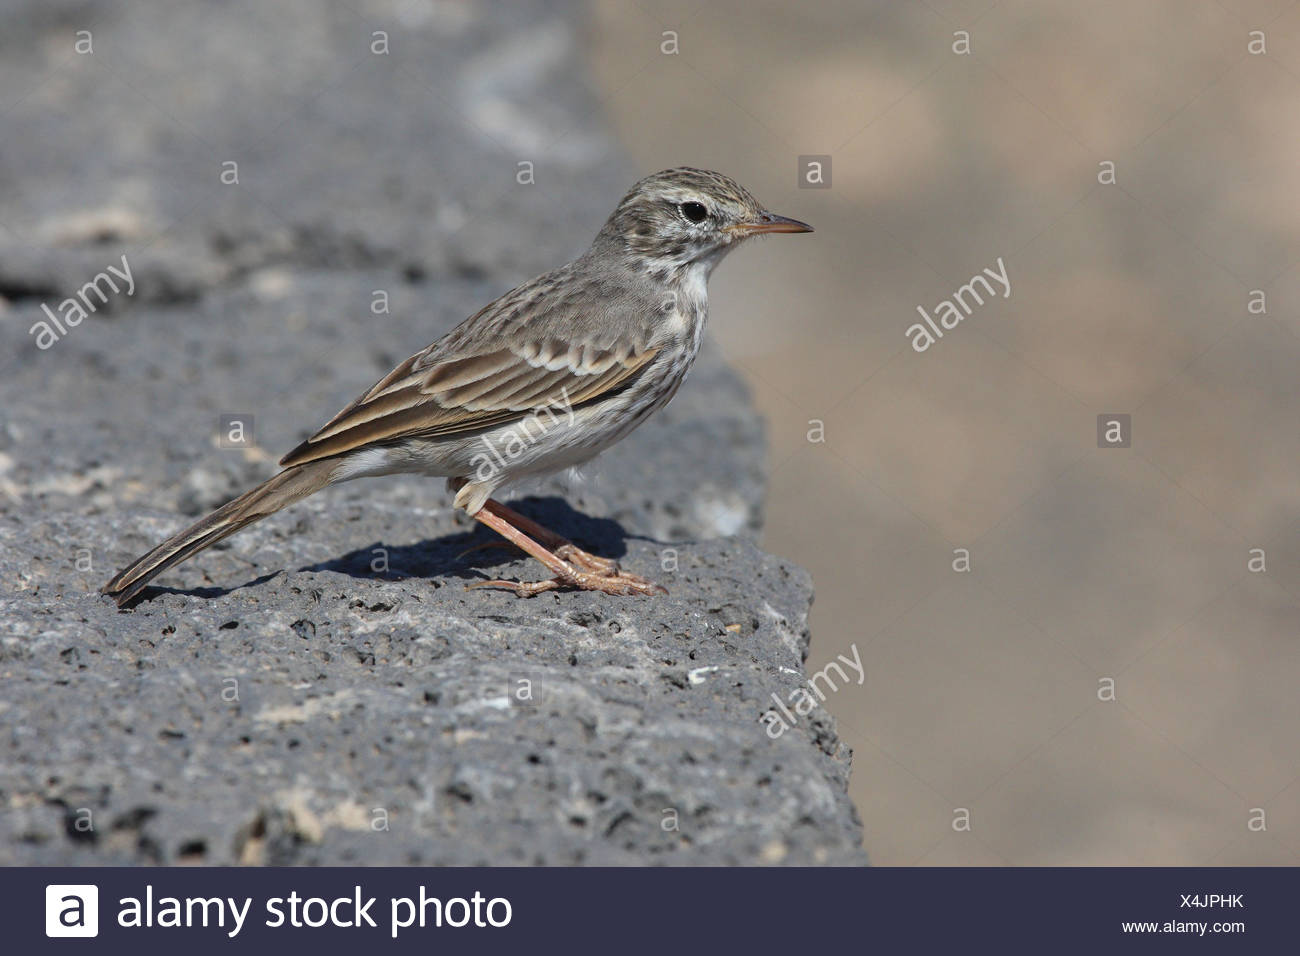 Canaries buzzer in the rock, - Stock Image